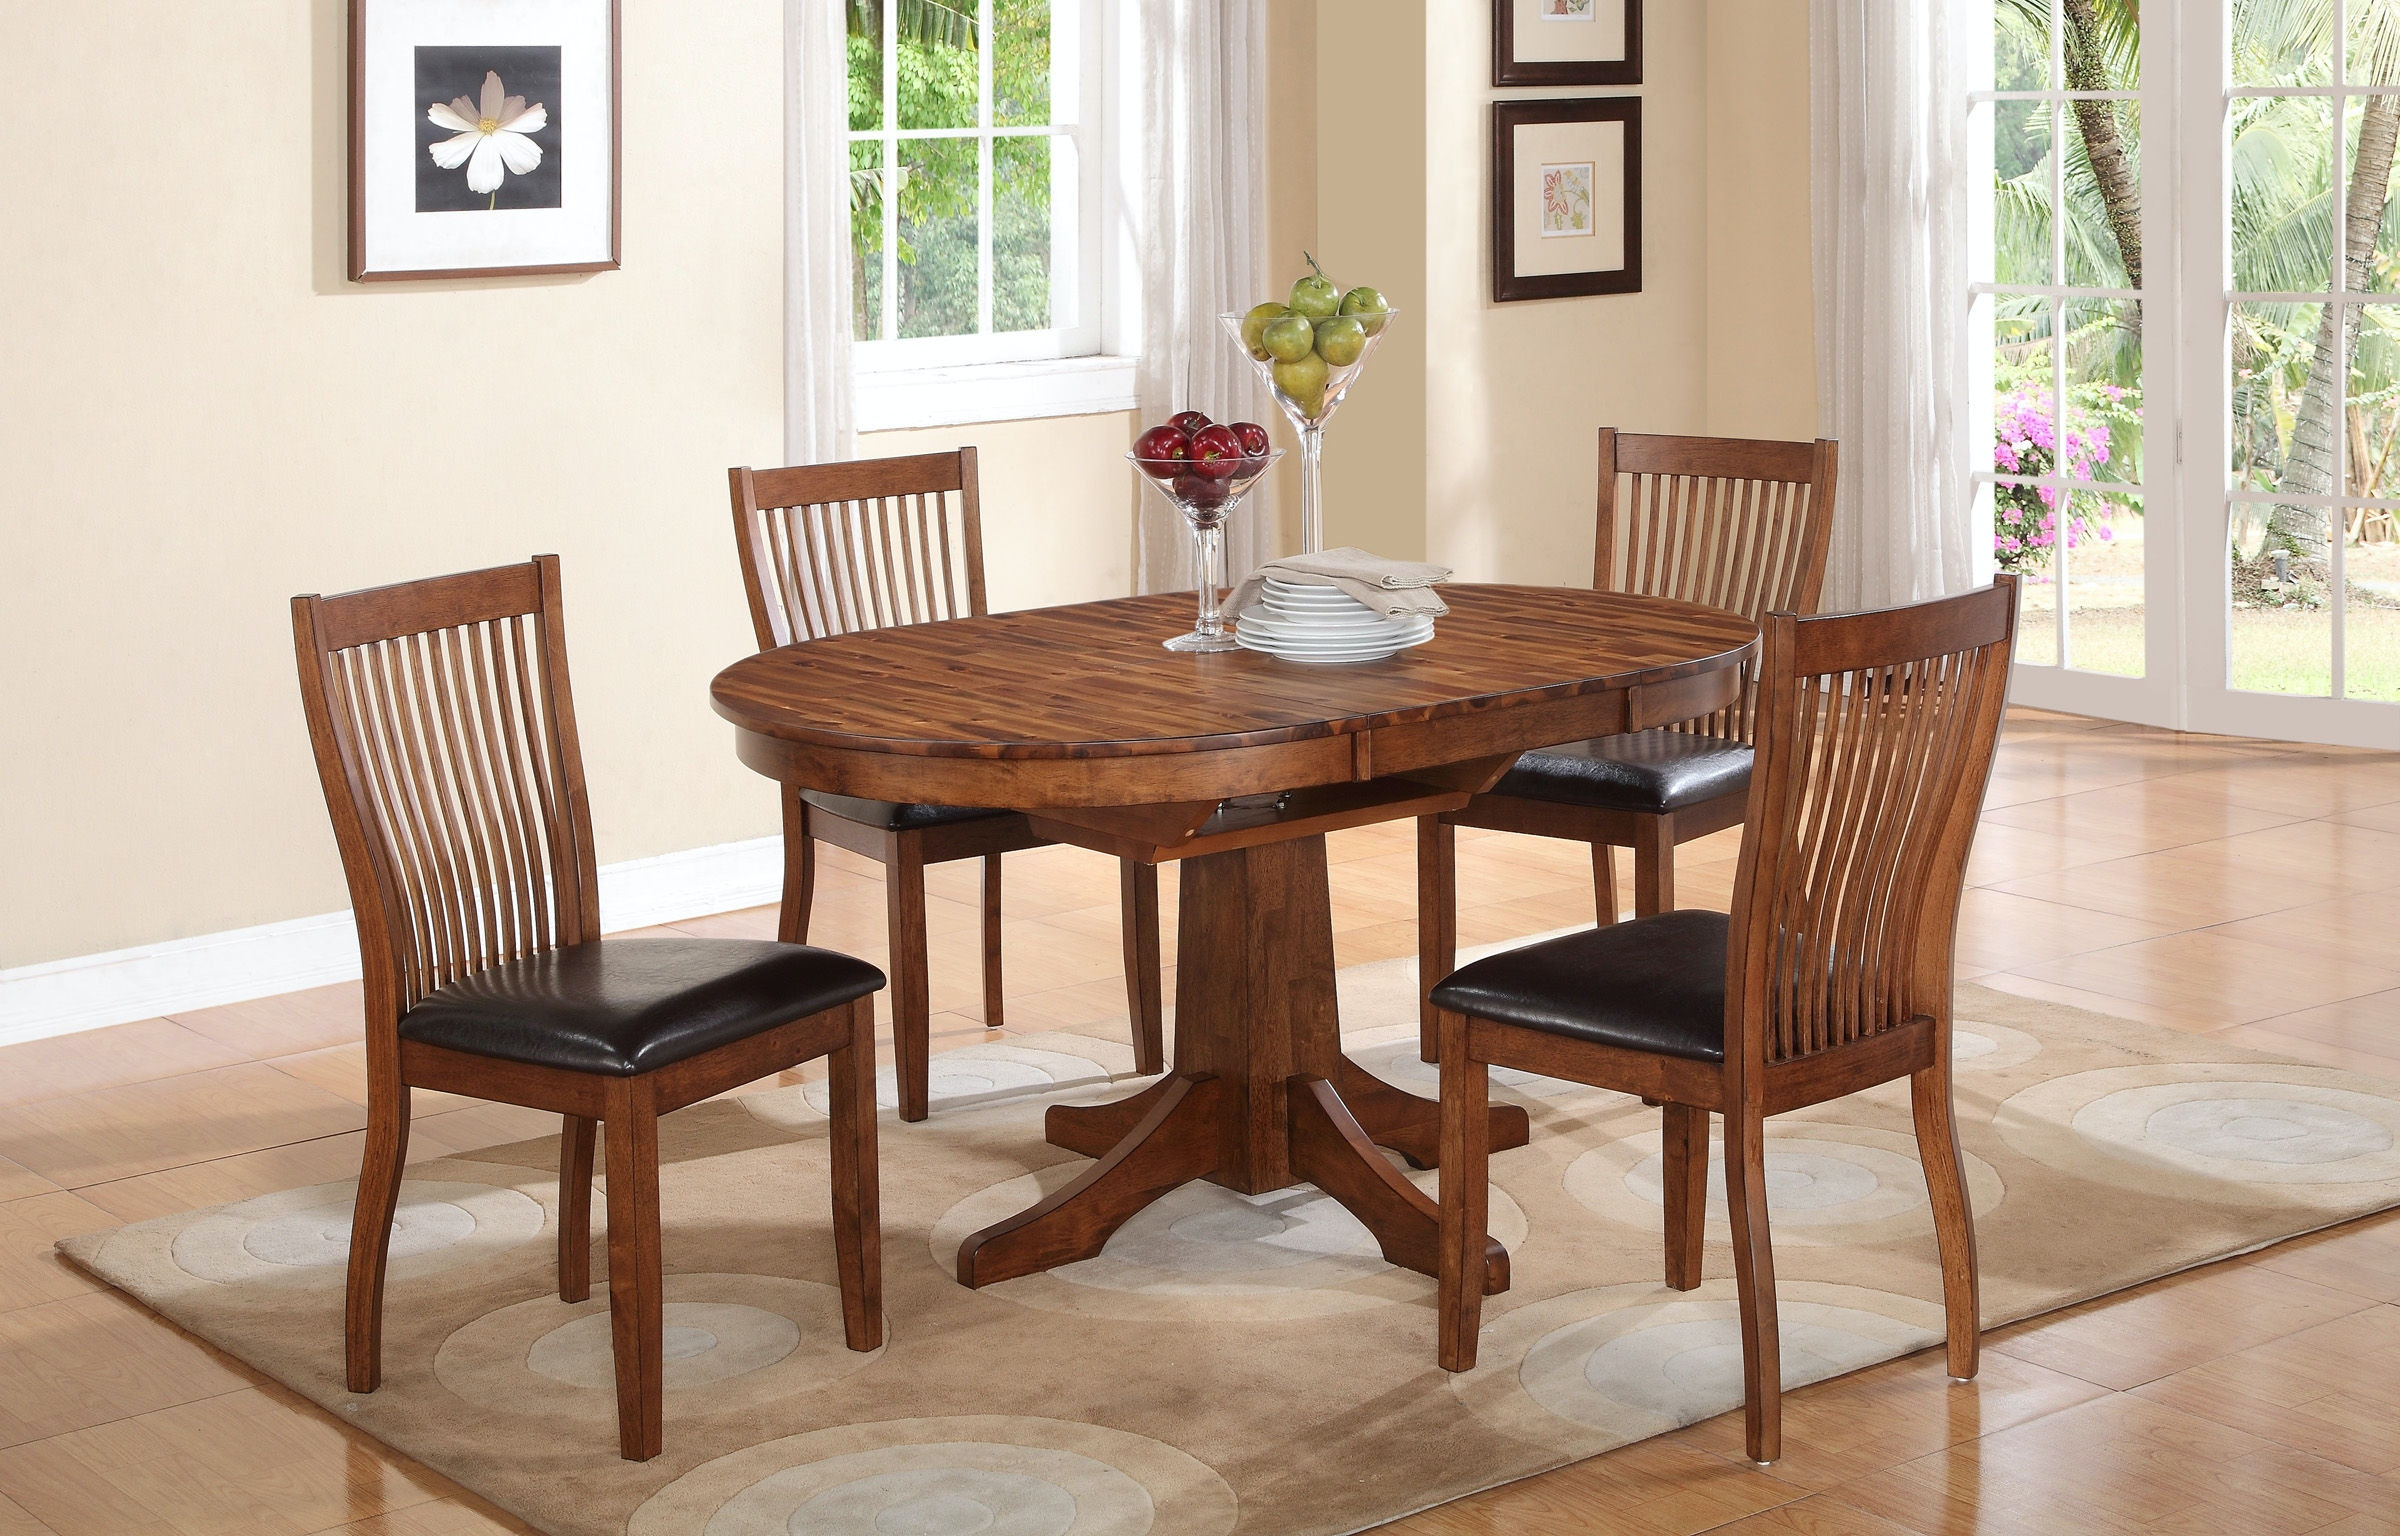 60 dining table round winners only dining room 60 inches table dfb14260 3932